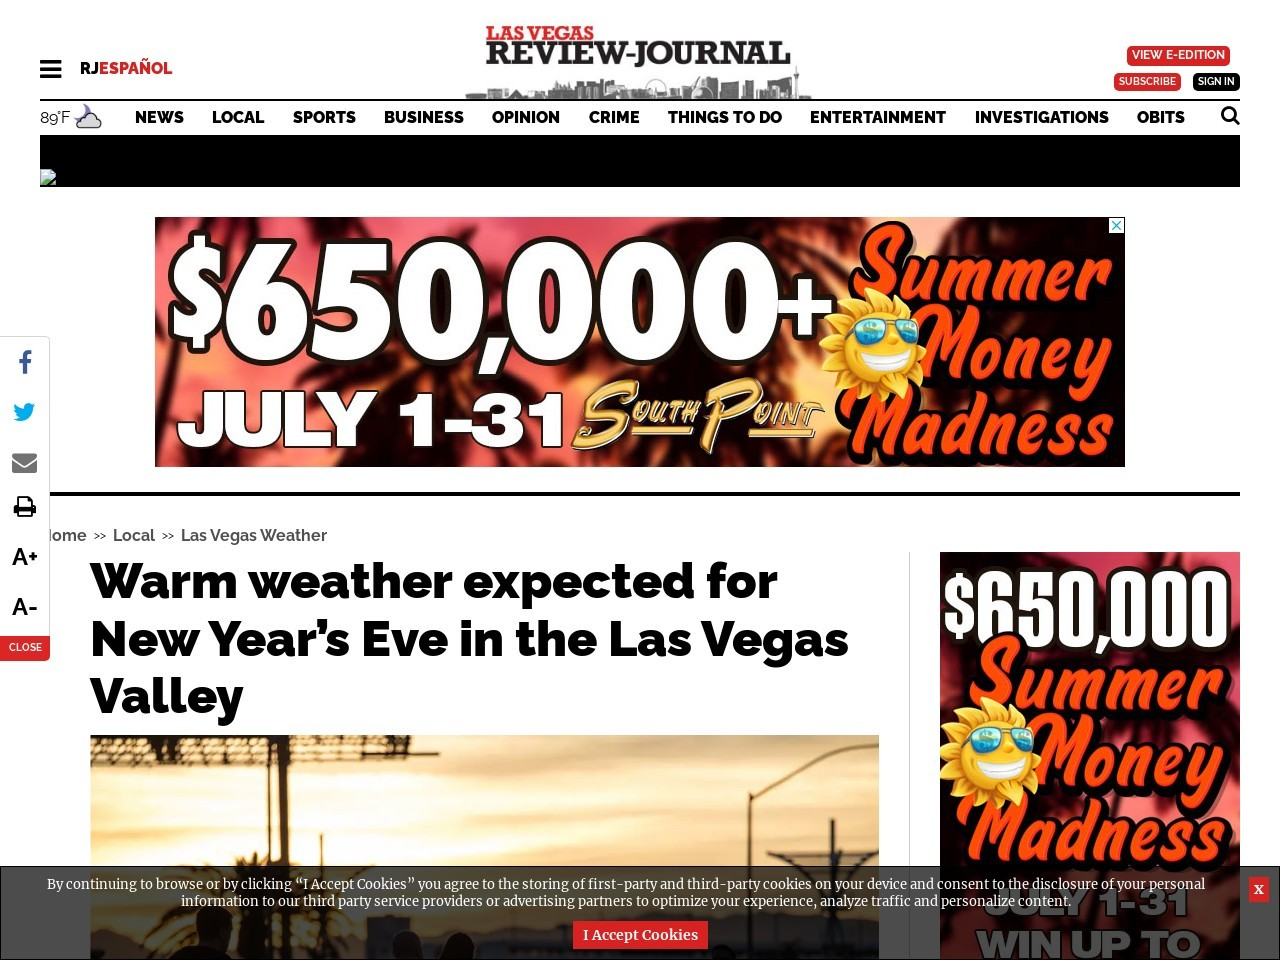 Warm weather expected for New Year's Eve in the Las Vegas Valley